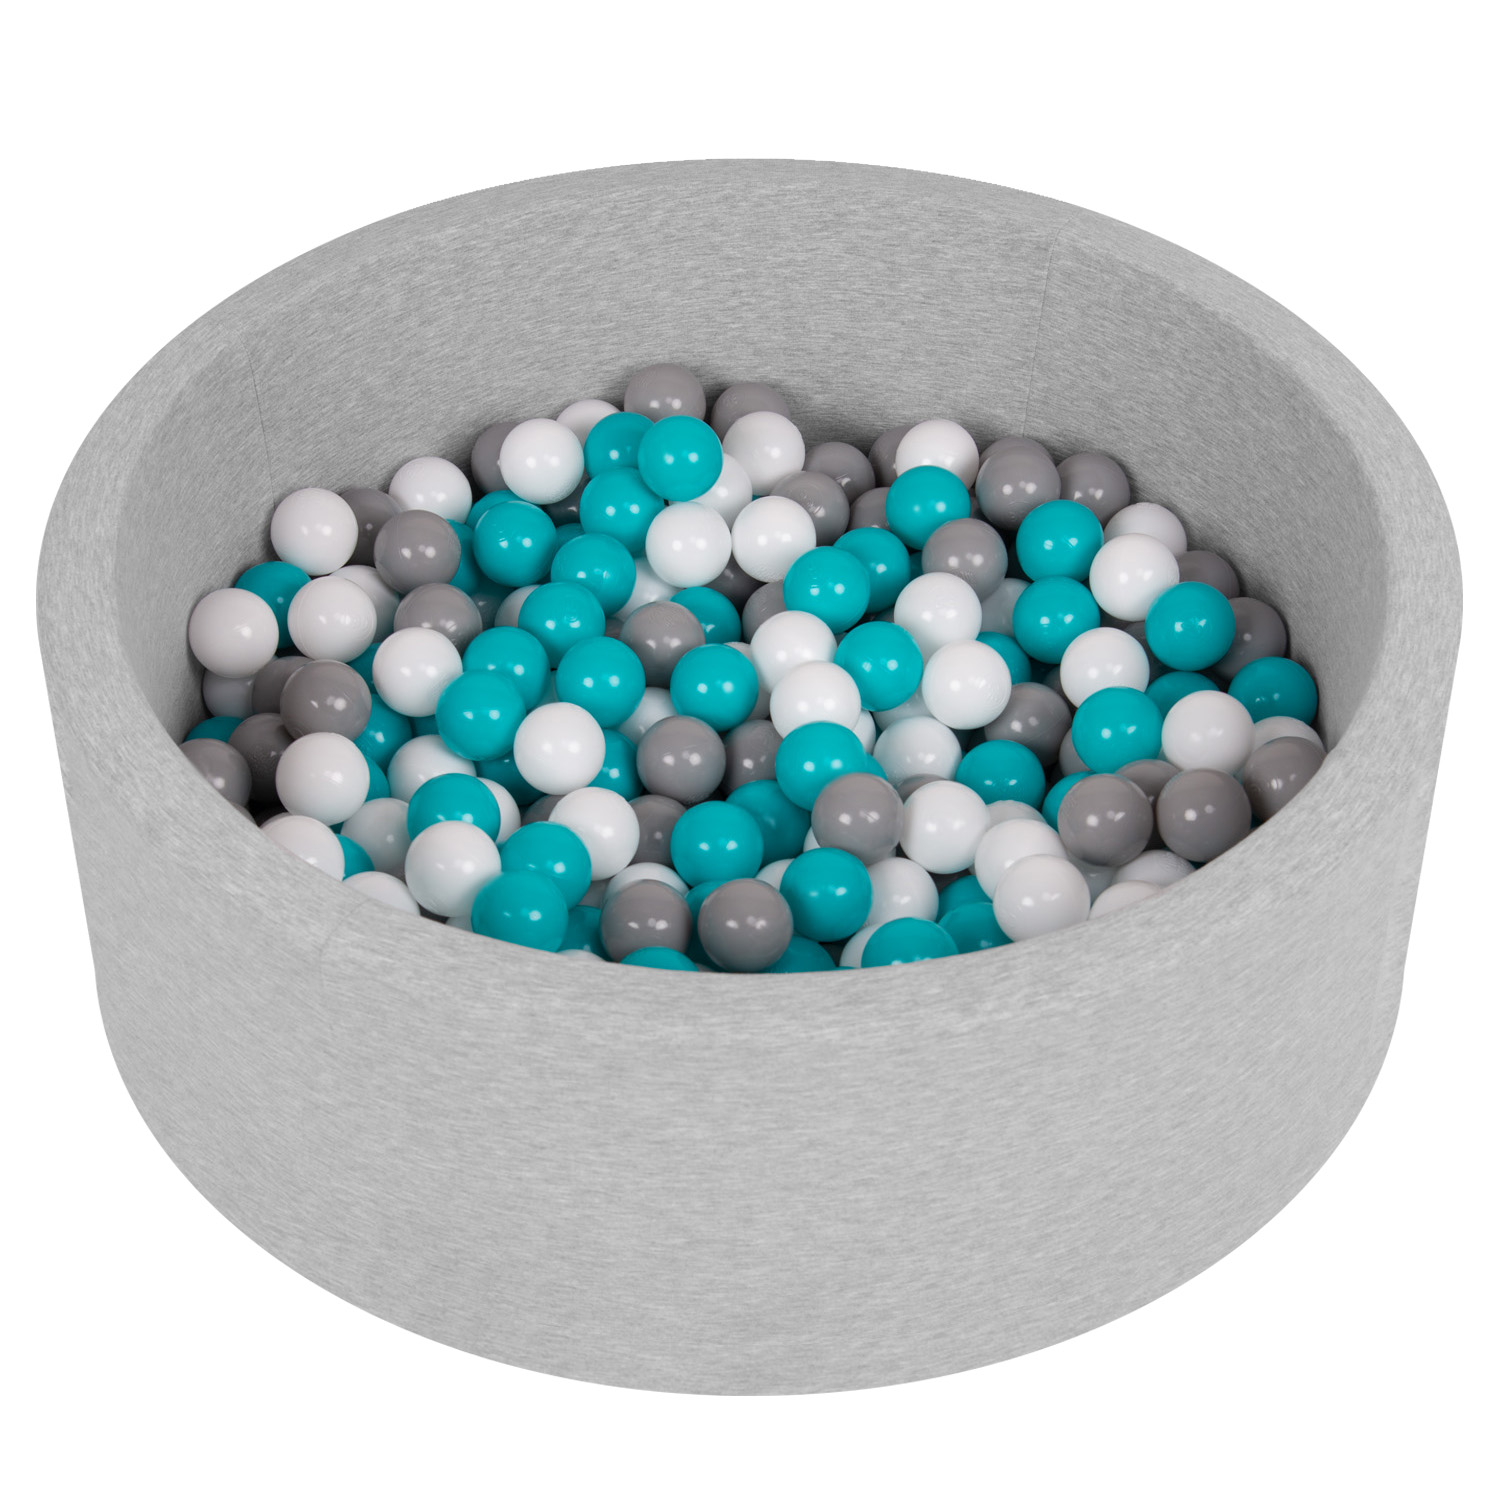 Selonis-Soft-Ball-Pit-Pool-Round-90x30cm-for-Baby-Toddler-200-Balls-Foam miniatuur 9